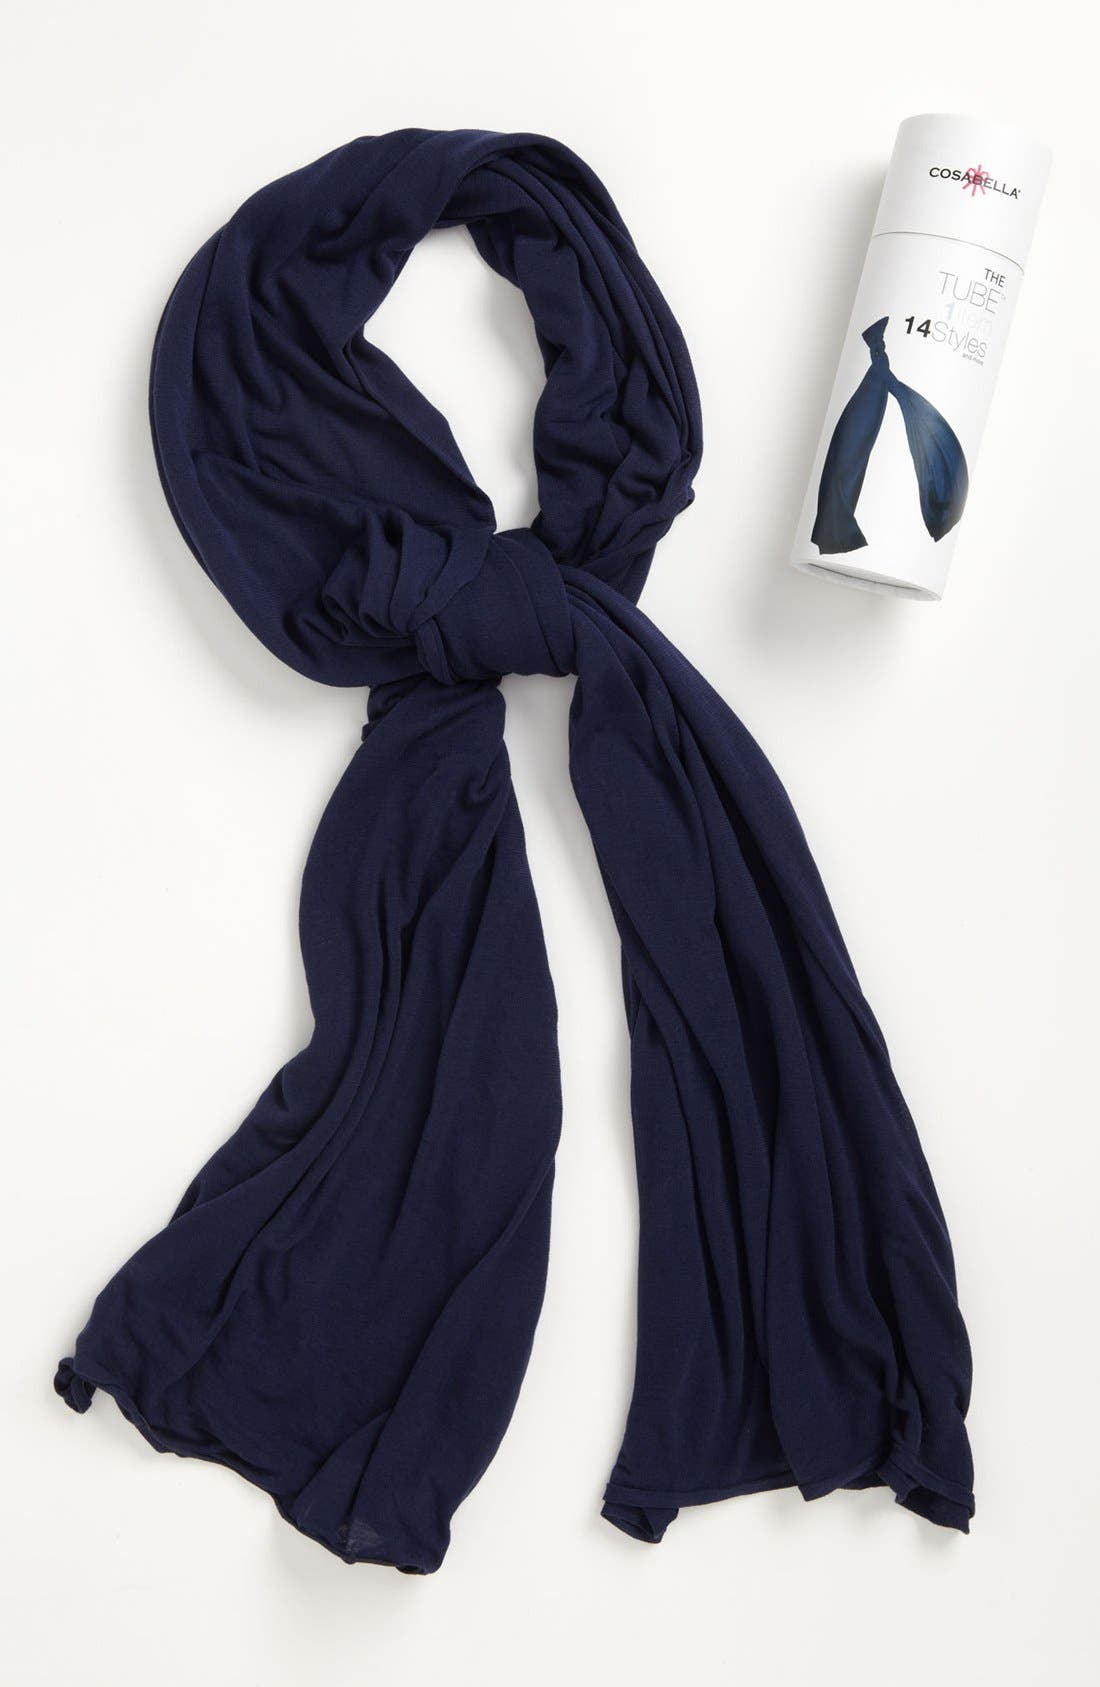 Main Image - Cosabella 'The Tube' Scarf